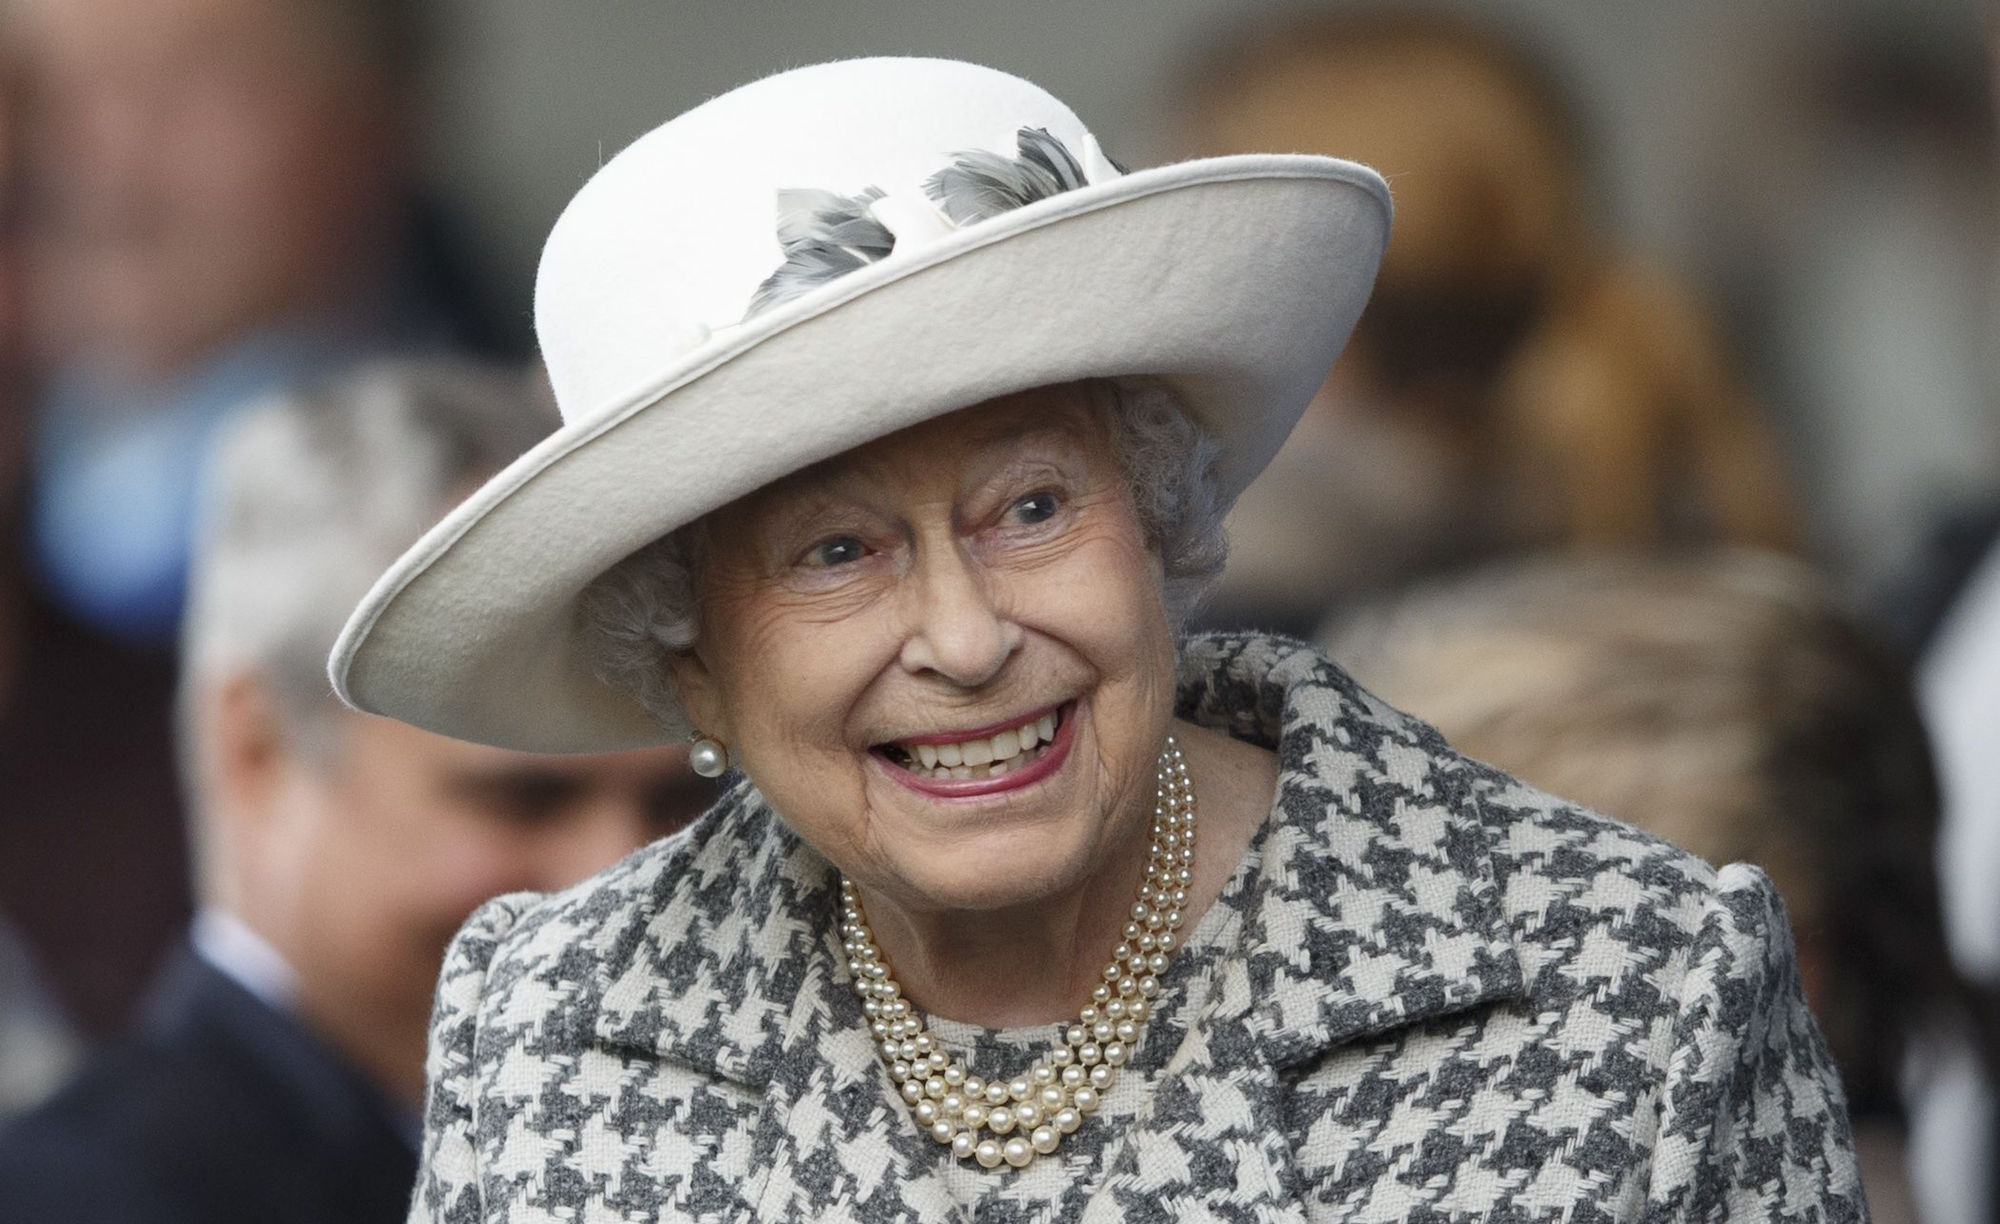 The Queen's latest tribute has been unveiled and it was literally designed on an iPad